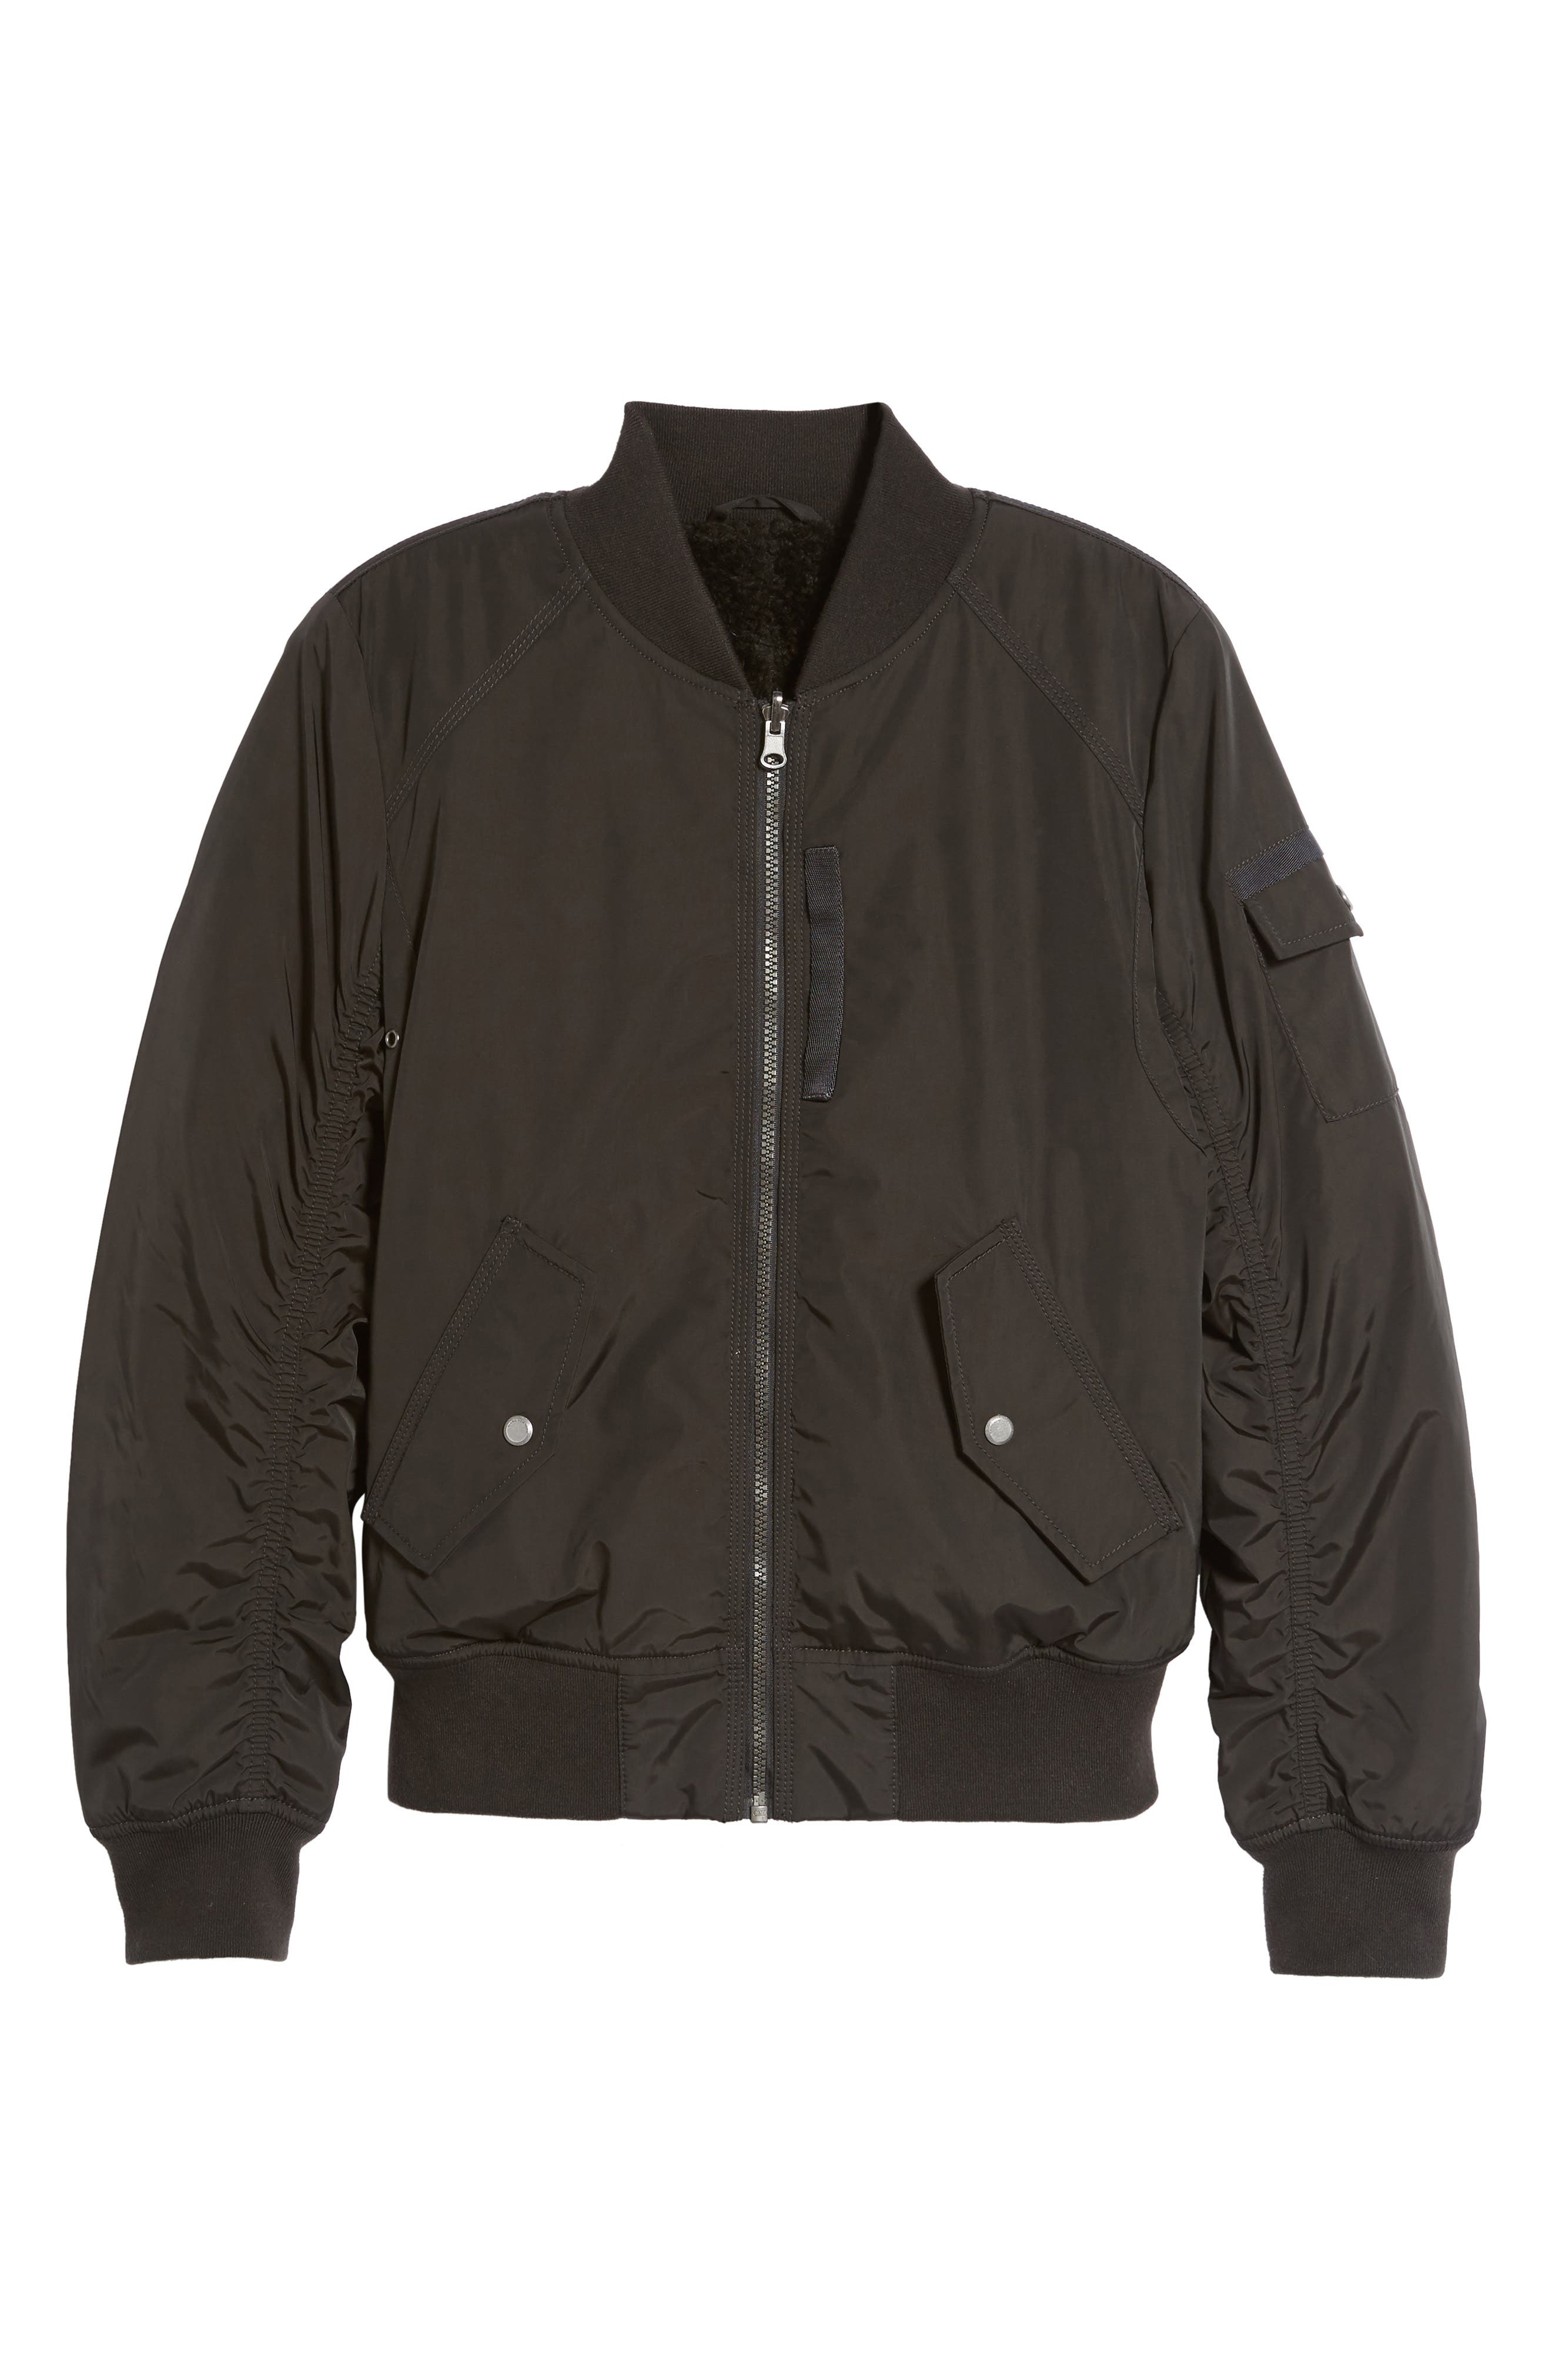 Andrew Marc Nicole Reversible Bomber Jacket,                             Alternate thumbnail 5, color,                             001